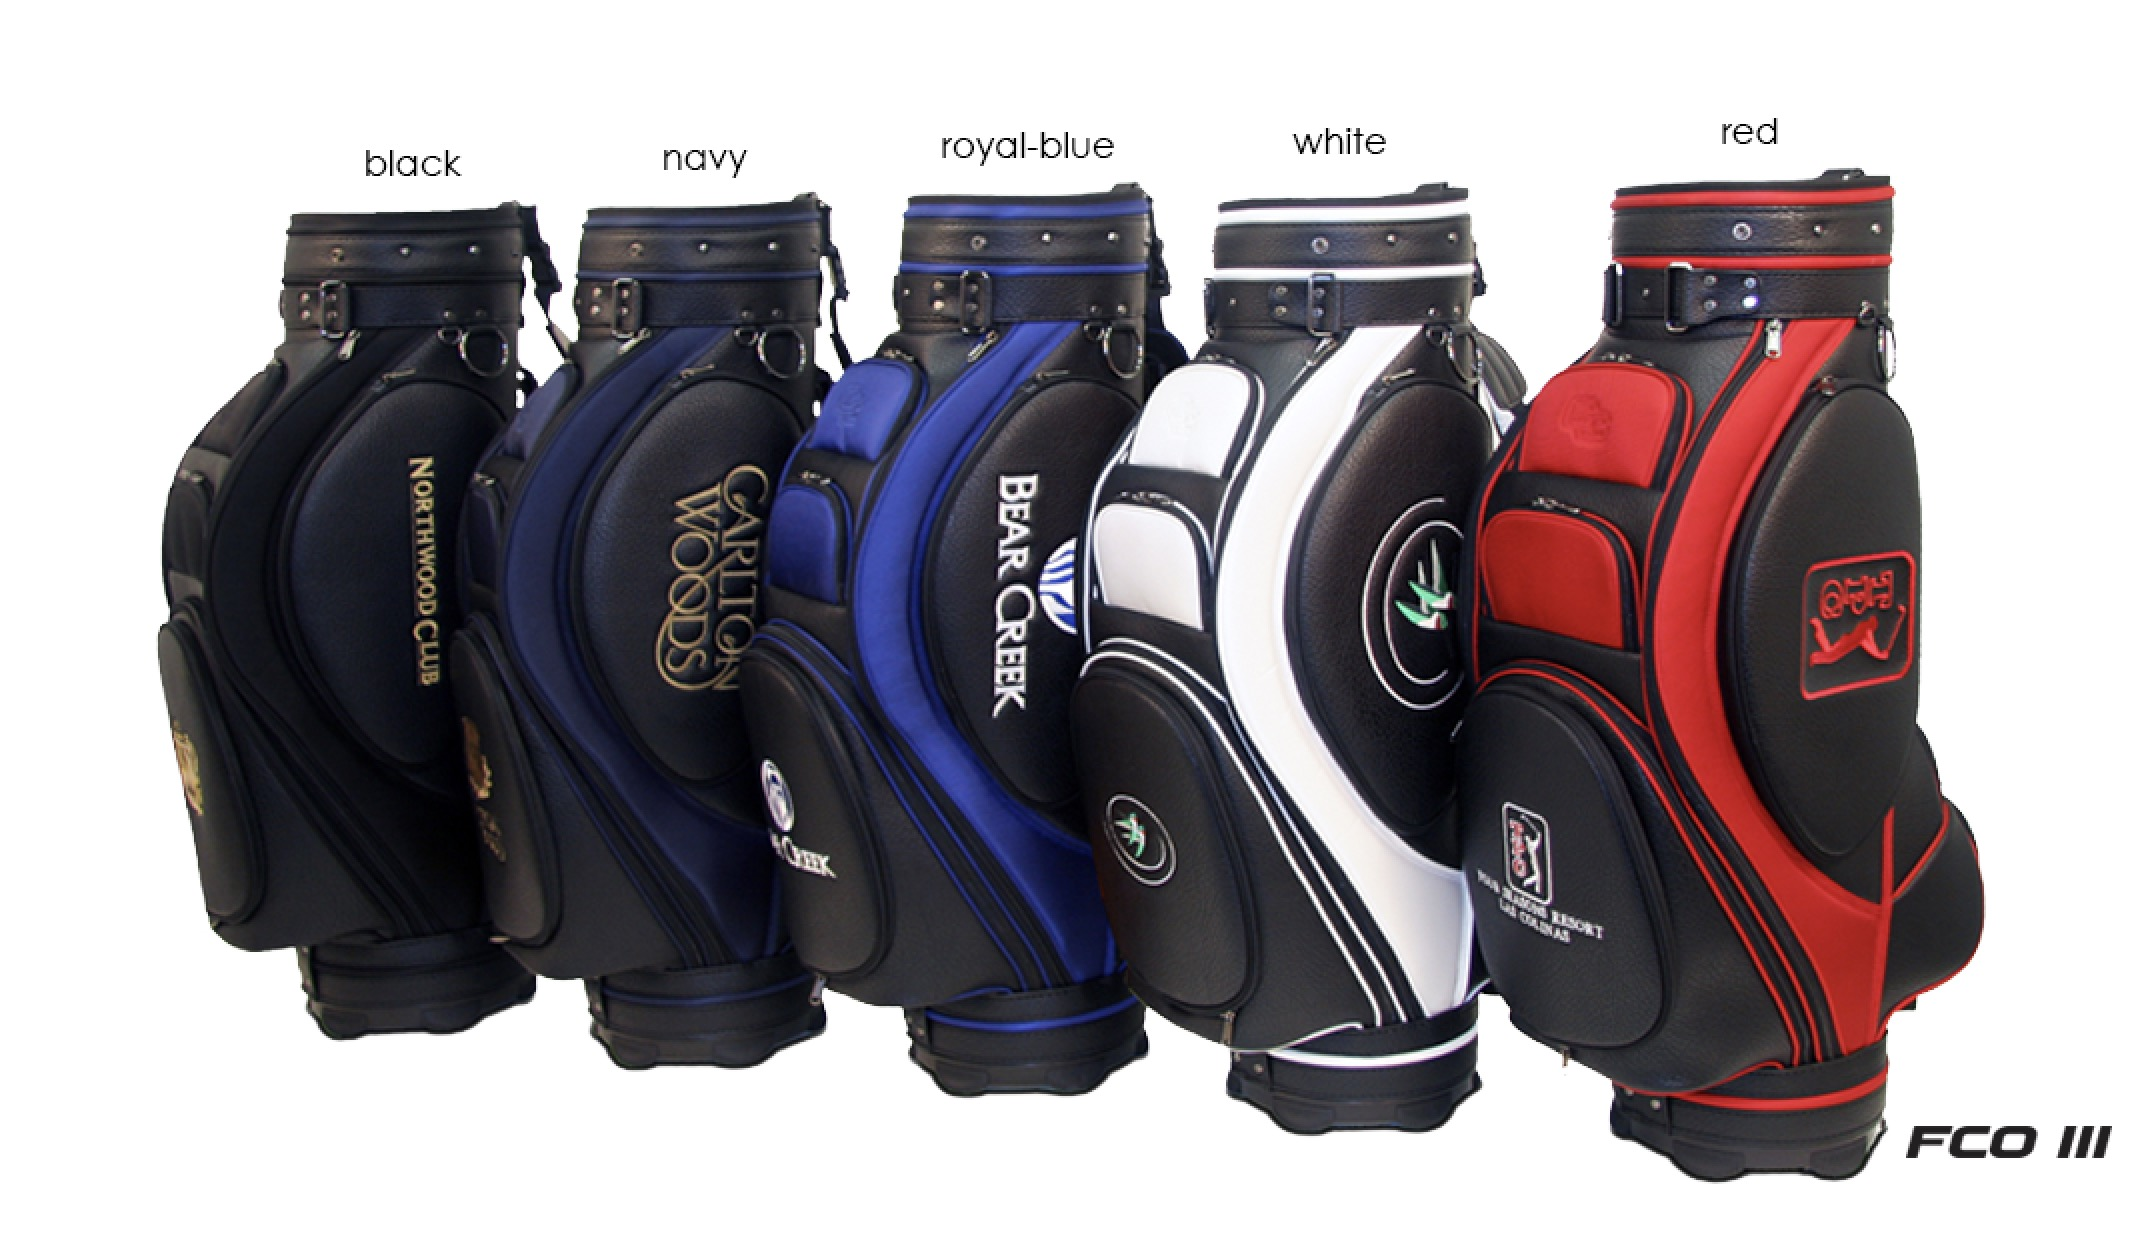 examples of corporate branded golf bags